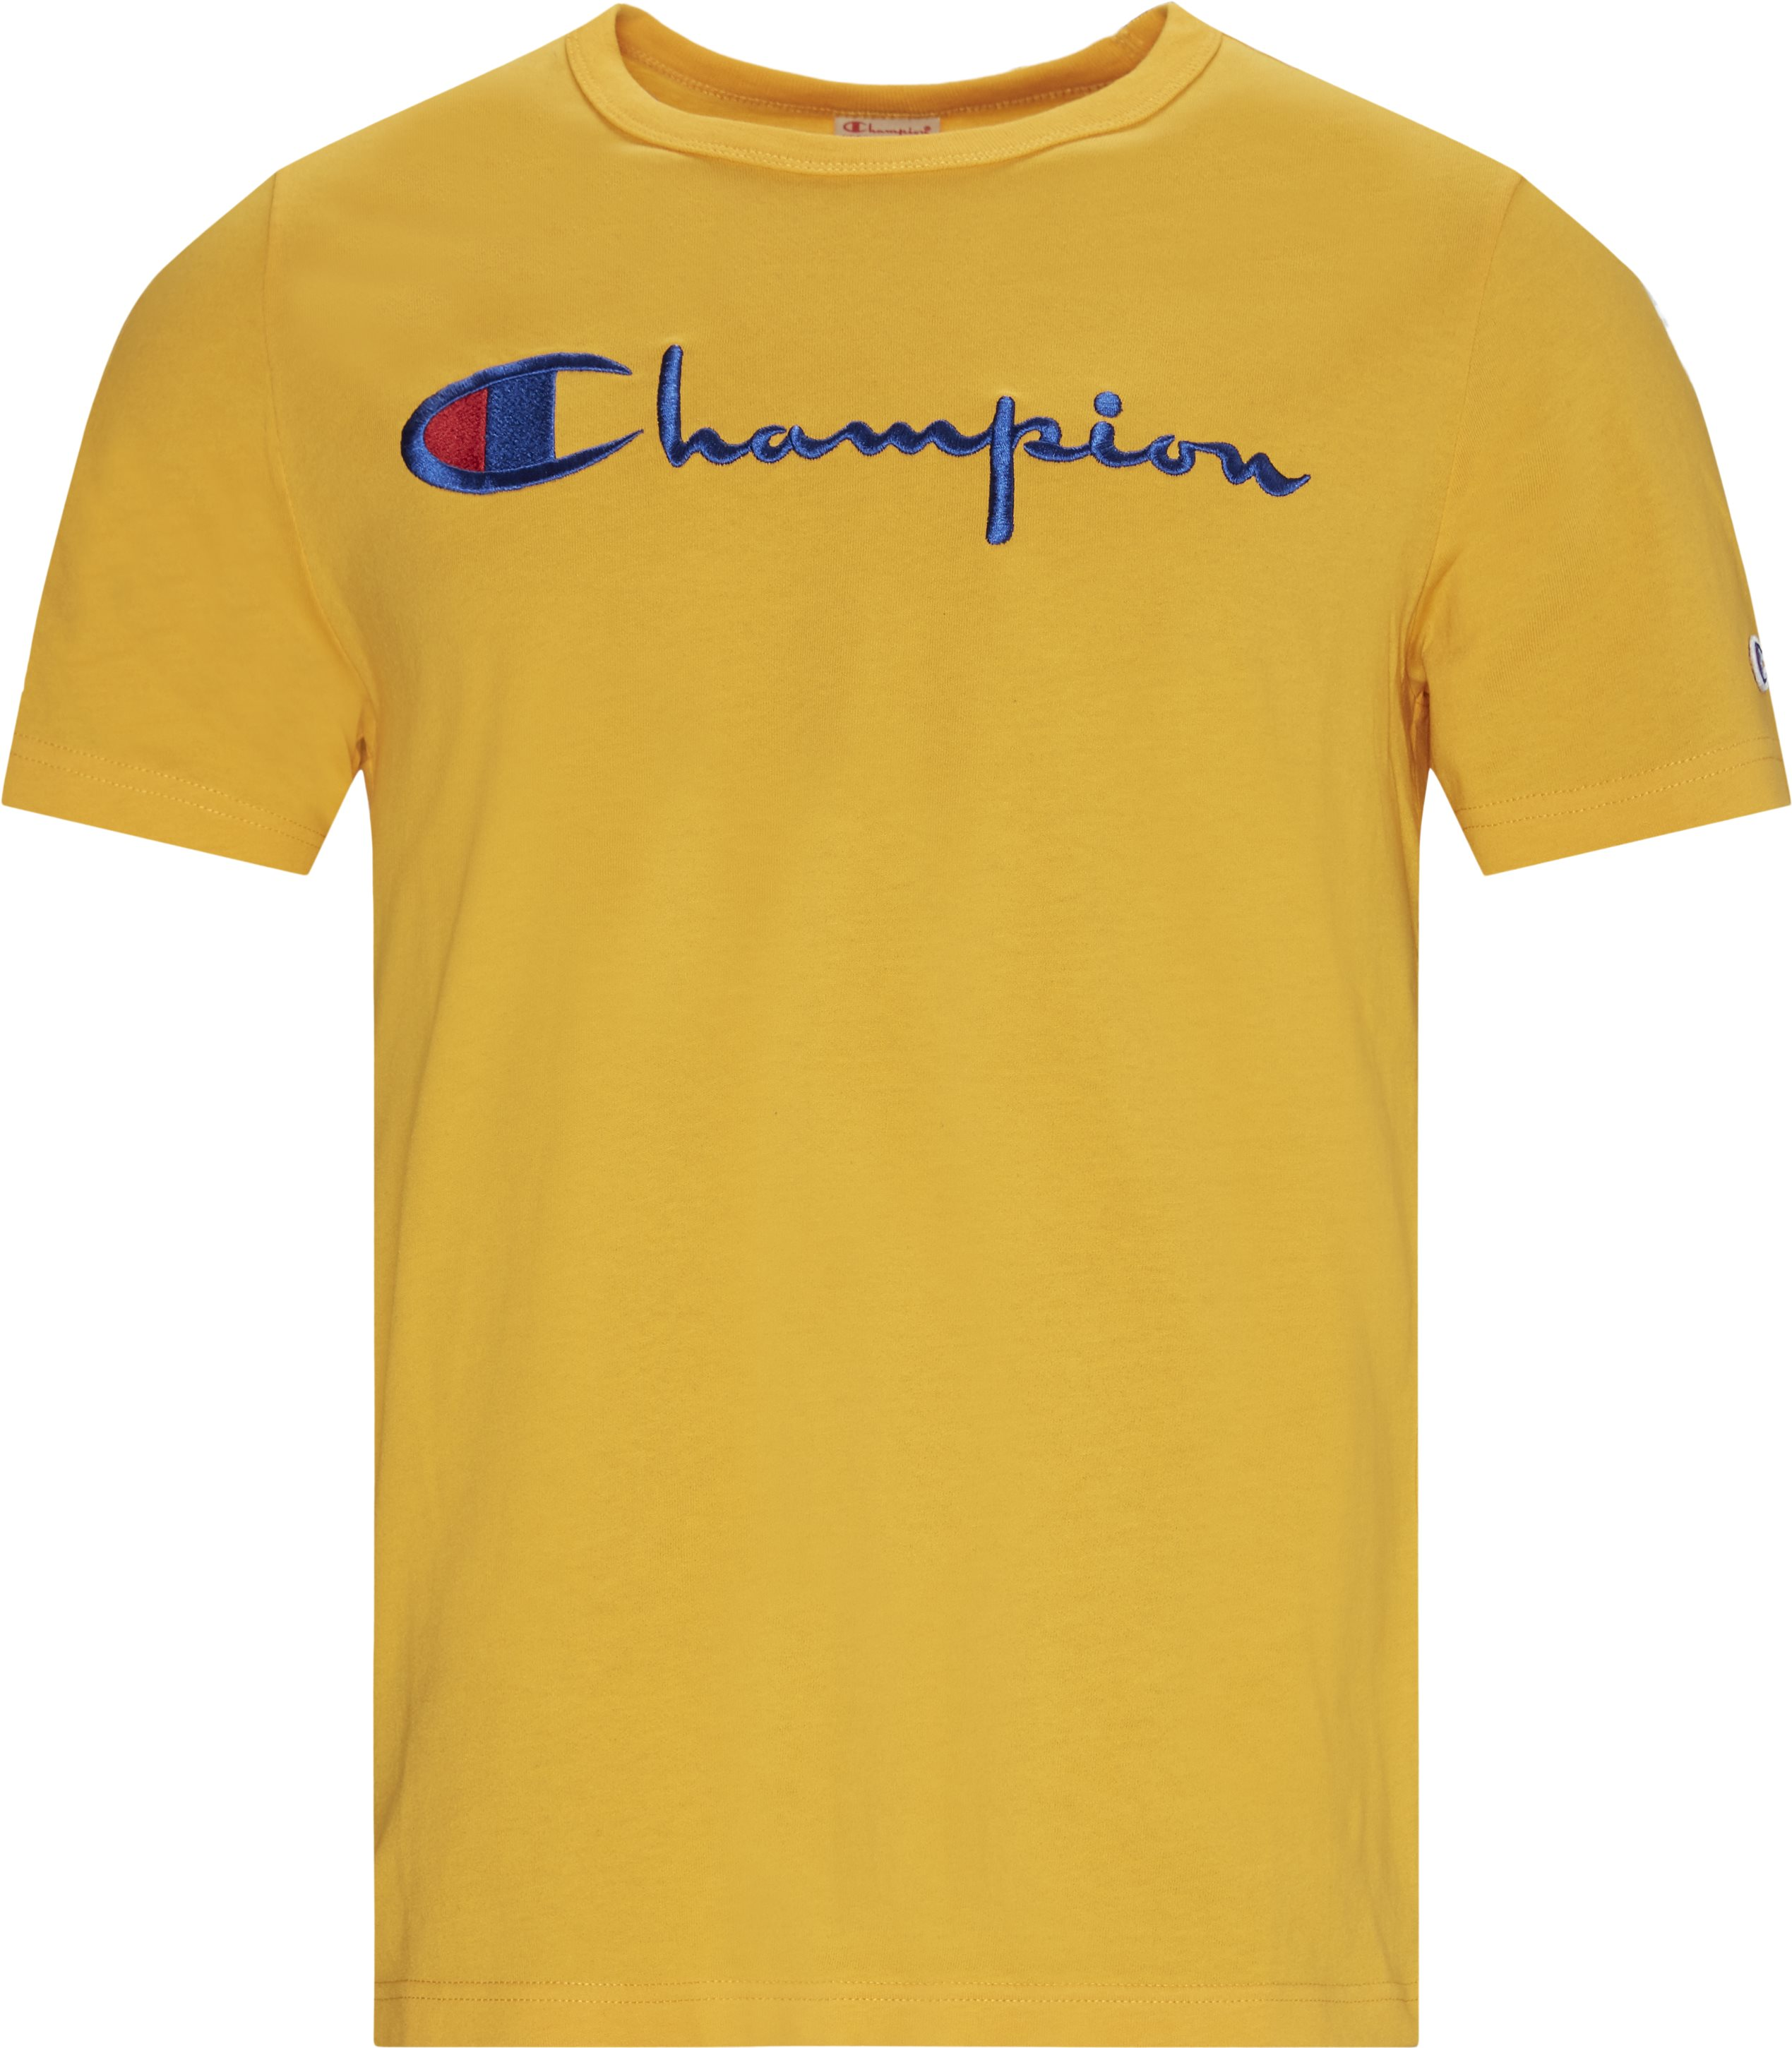 Full Chest Script Tee - T-shirts - Regular - Orange